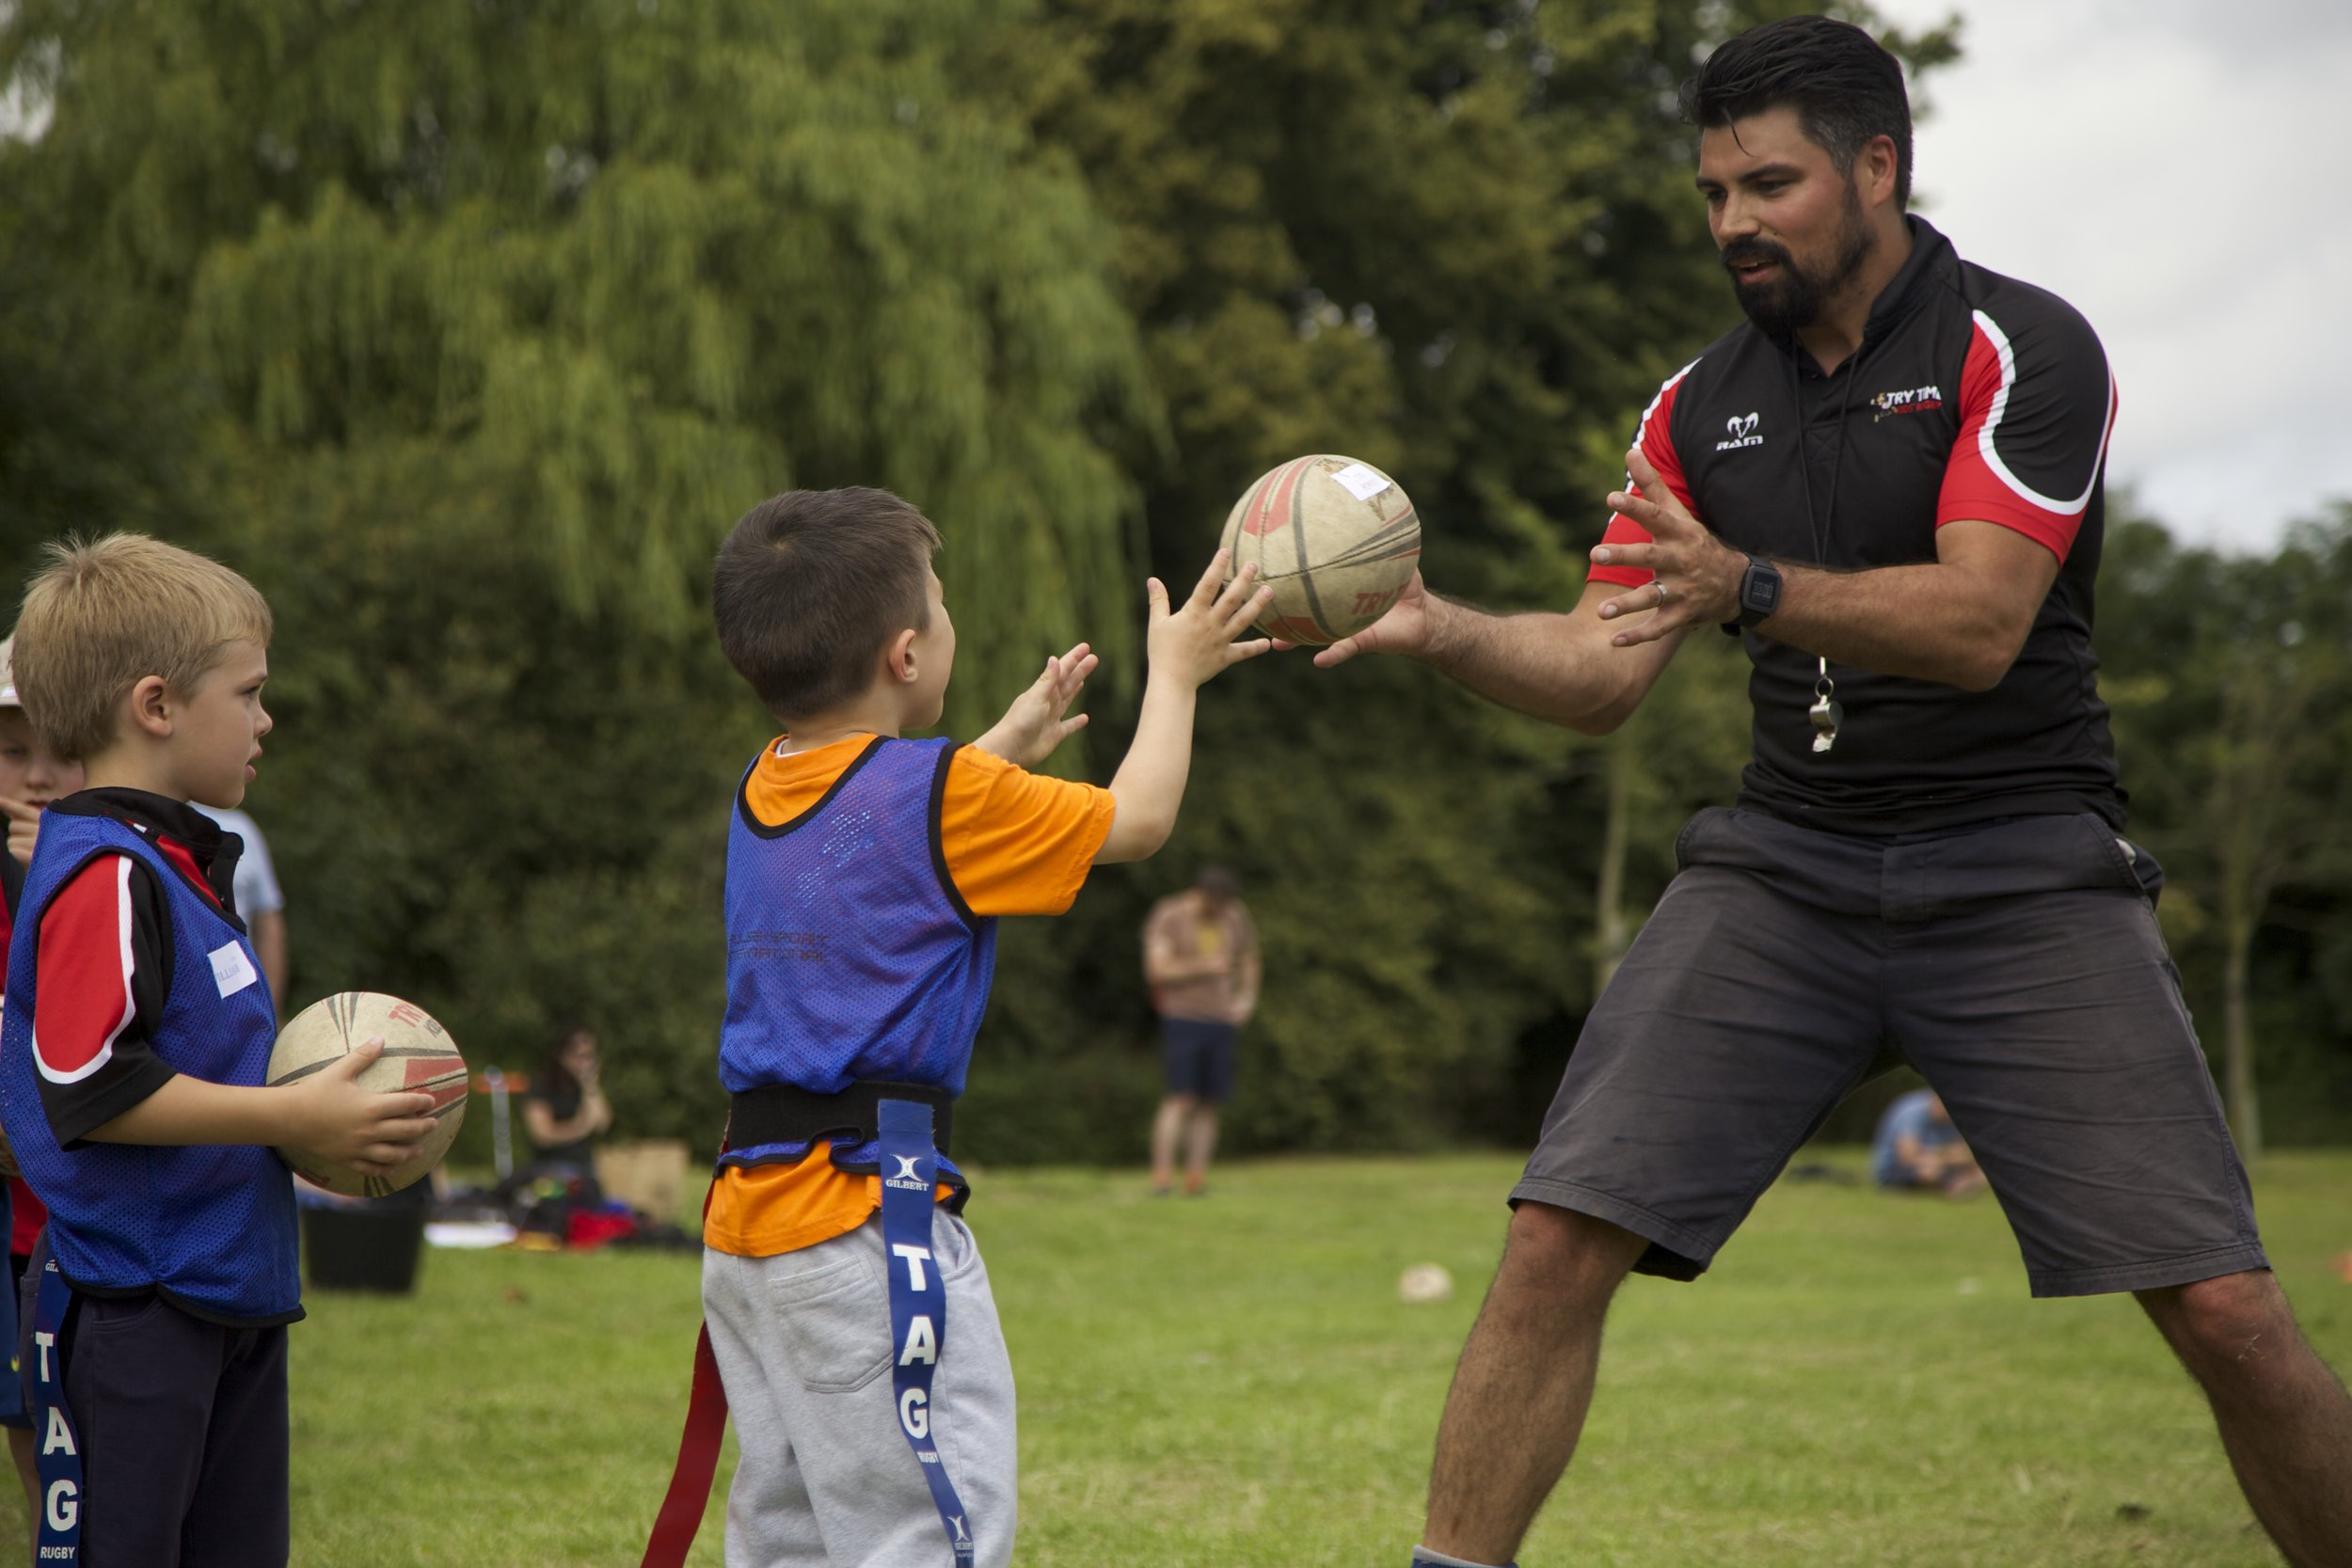 rugby for 5 year olds